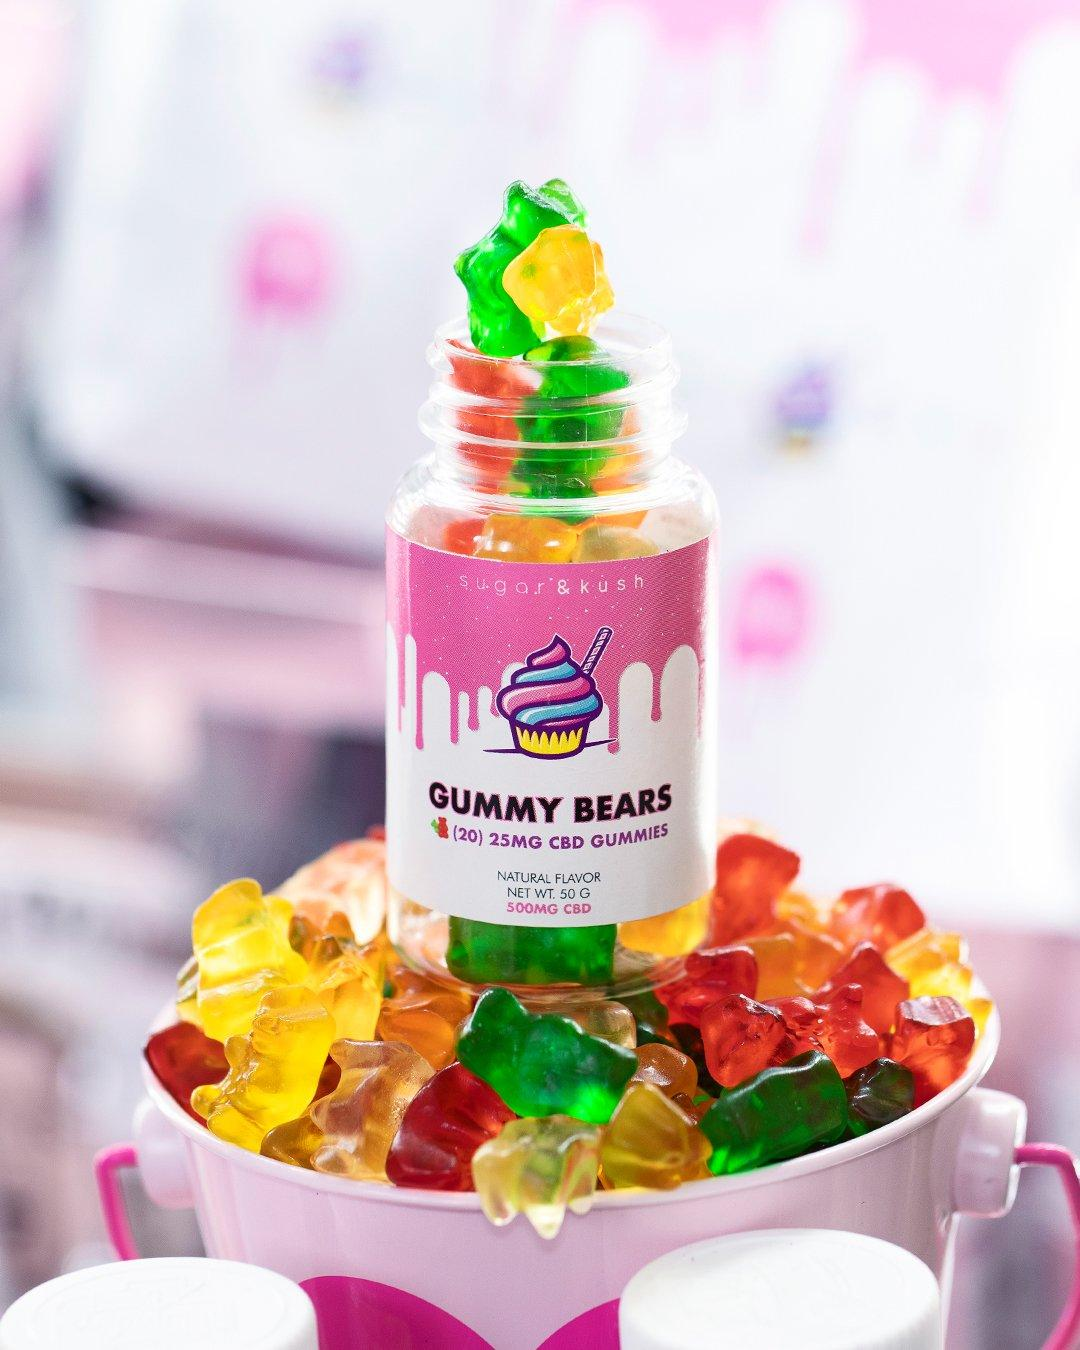 Colorful gummy bears infused with CBD from Sugar and Kush.